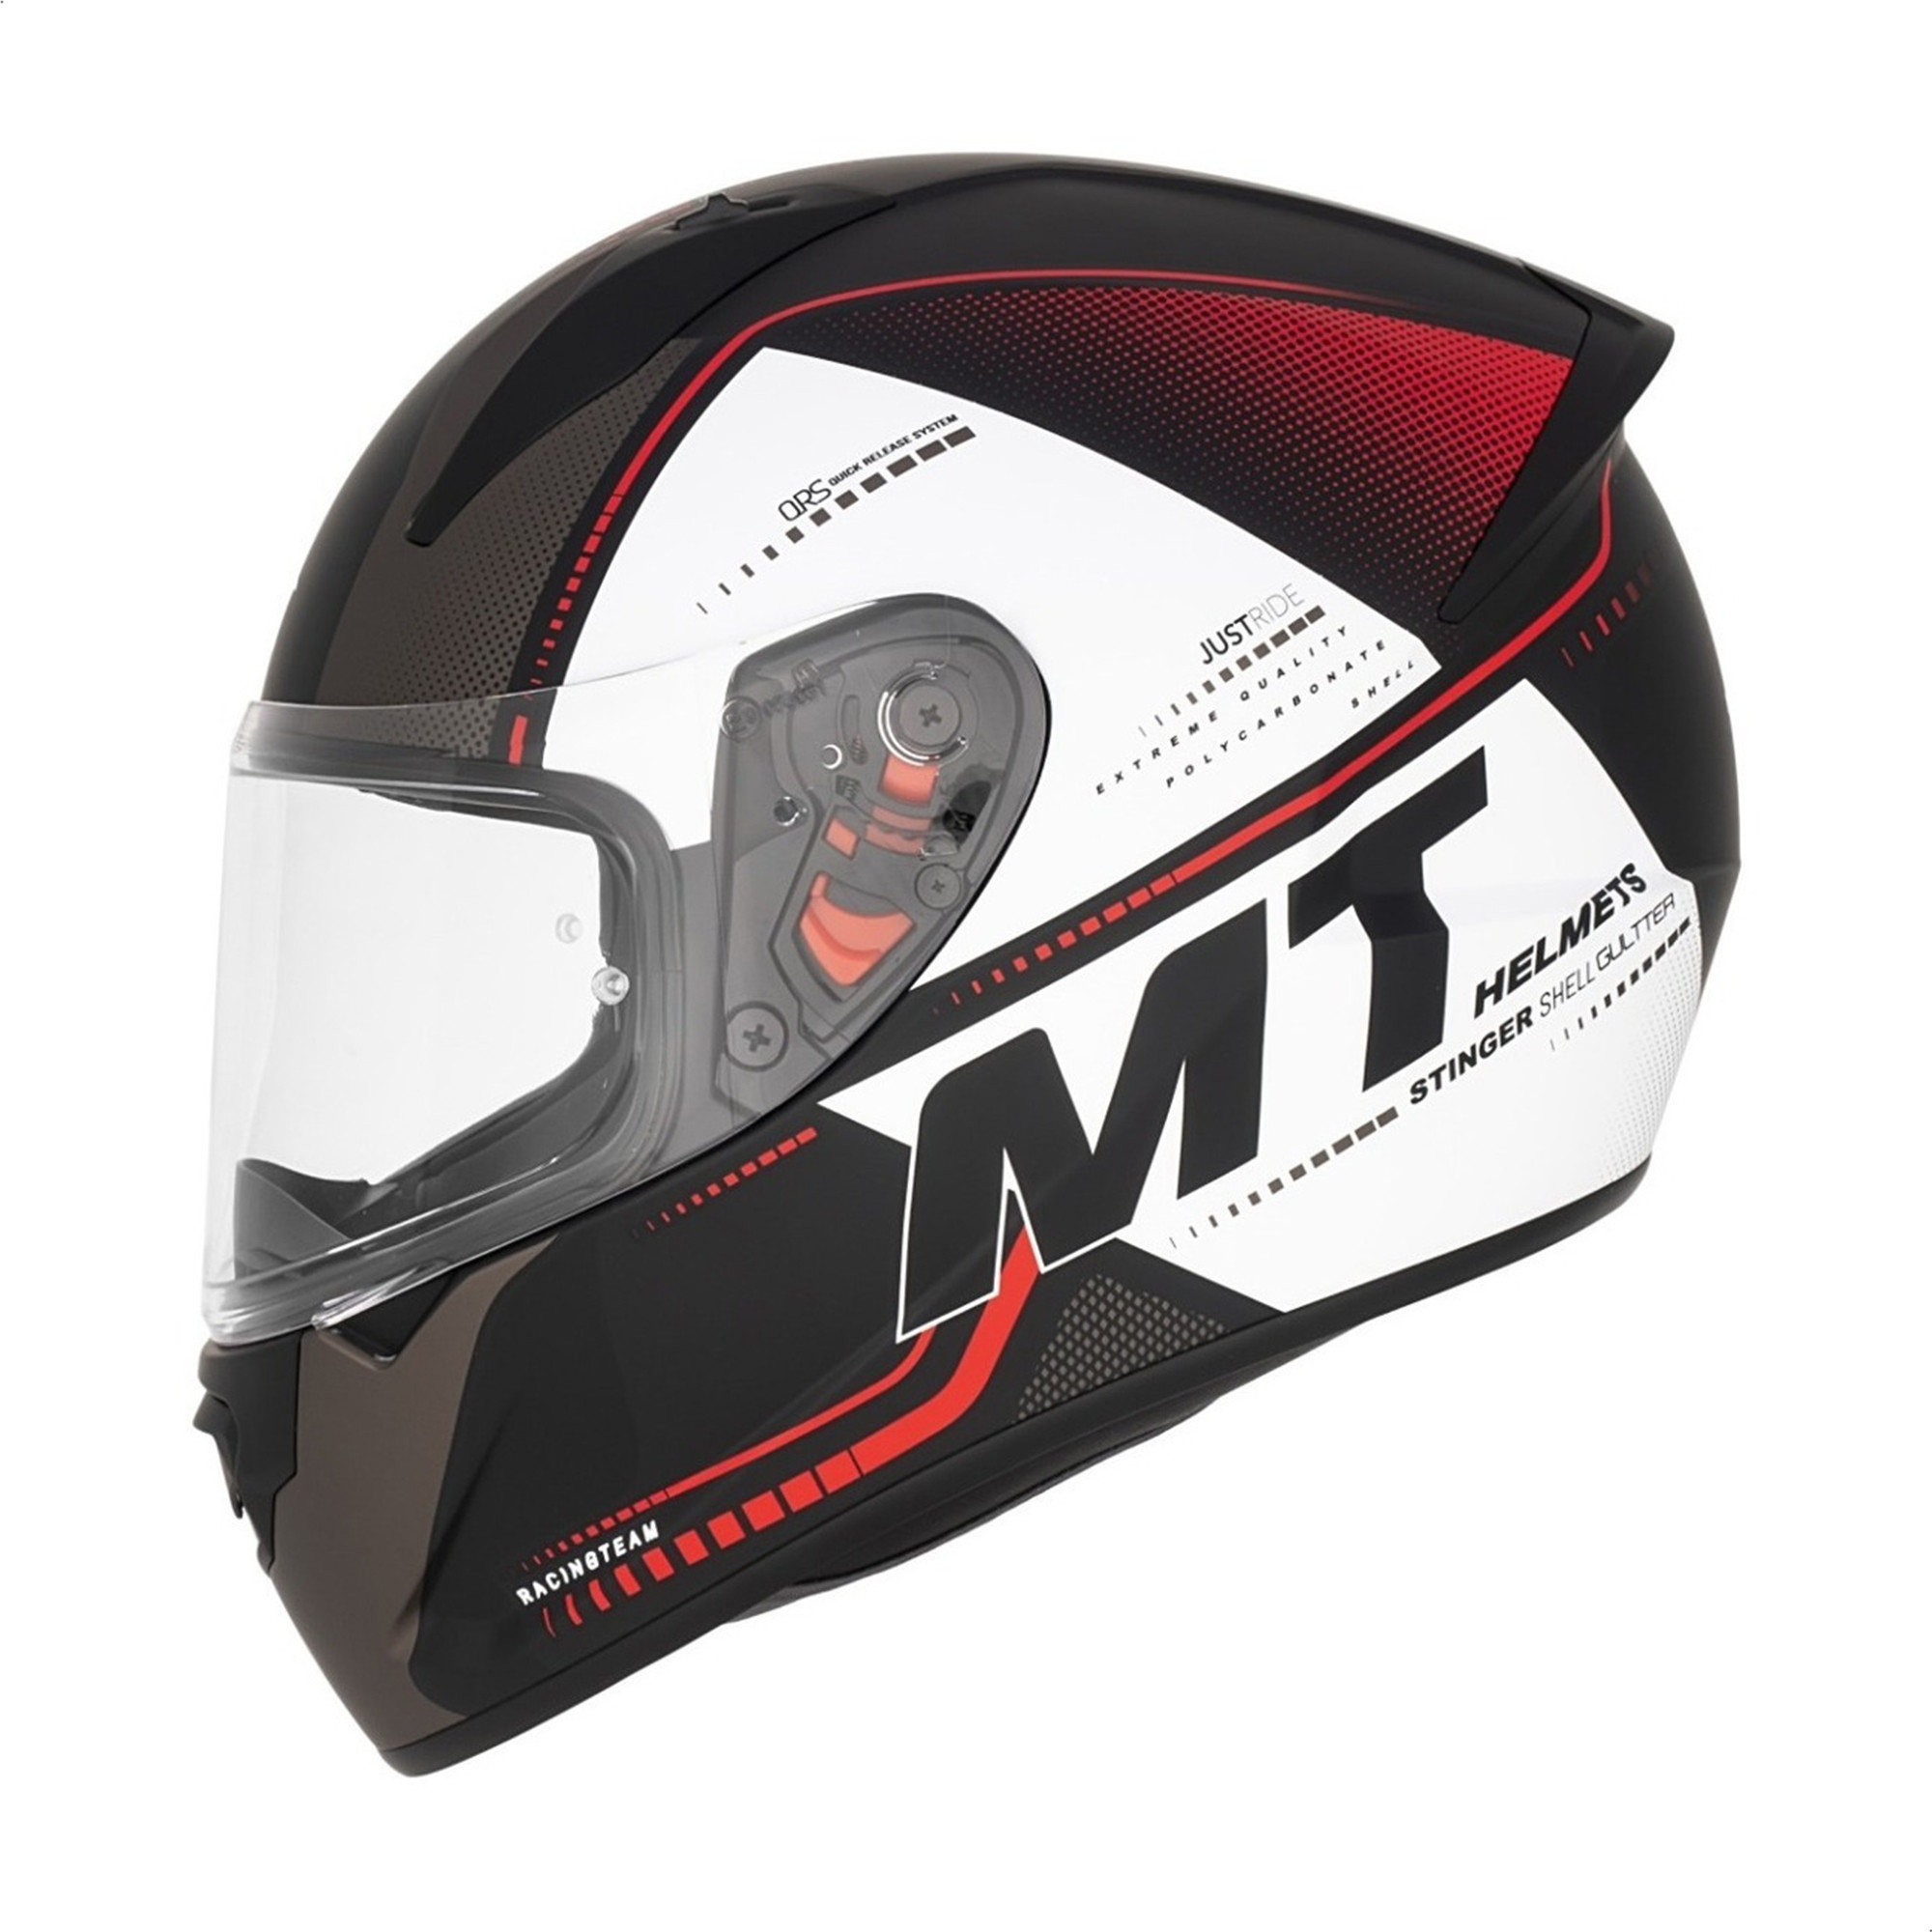 Casco Integral Mt Stinger Gultter C5 Rojo Mate